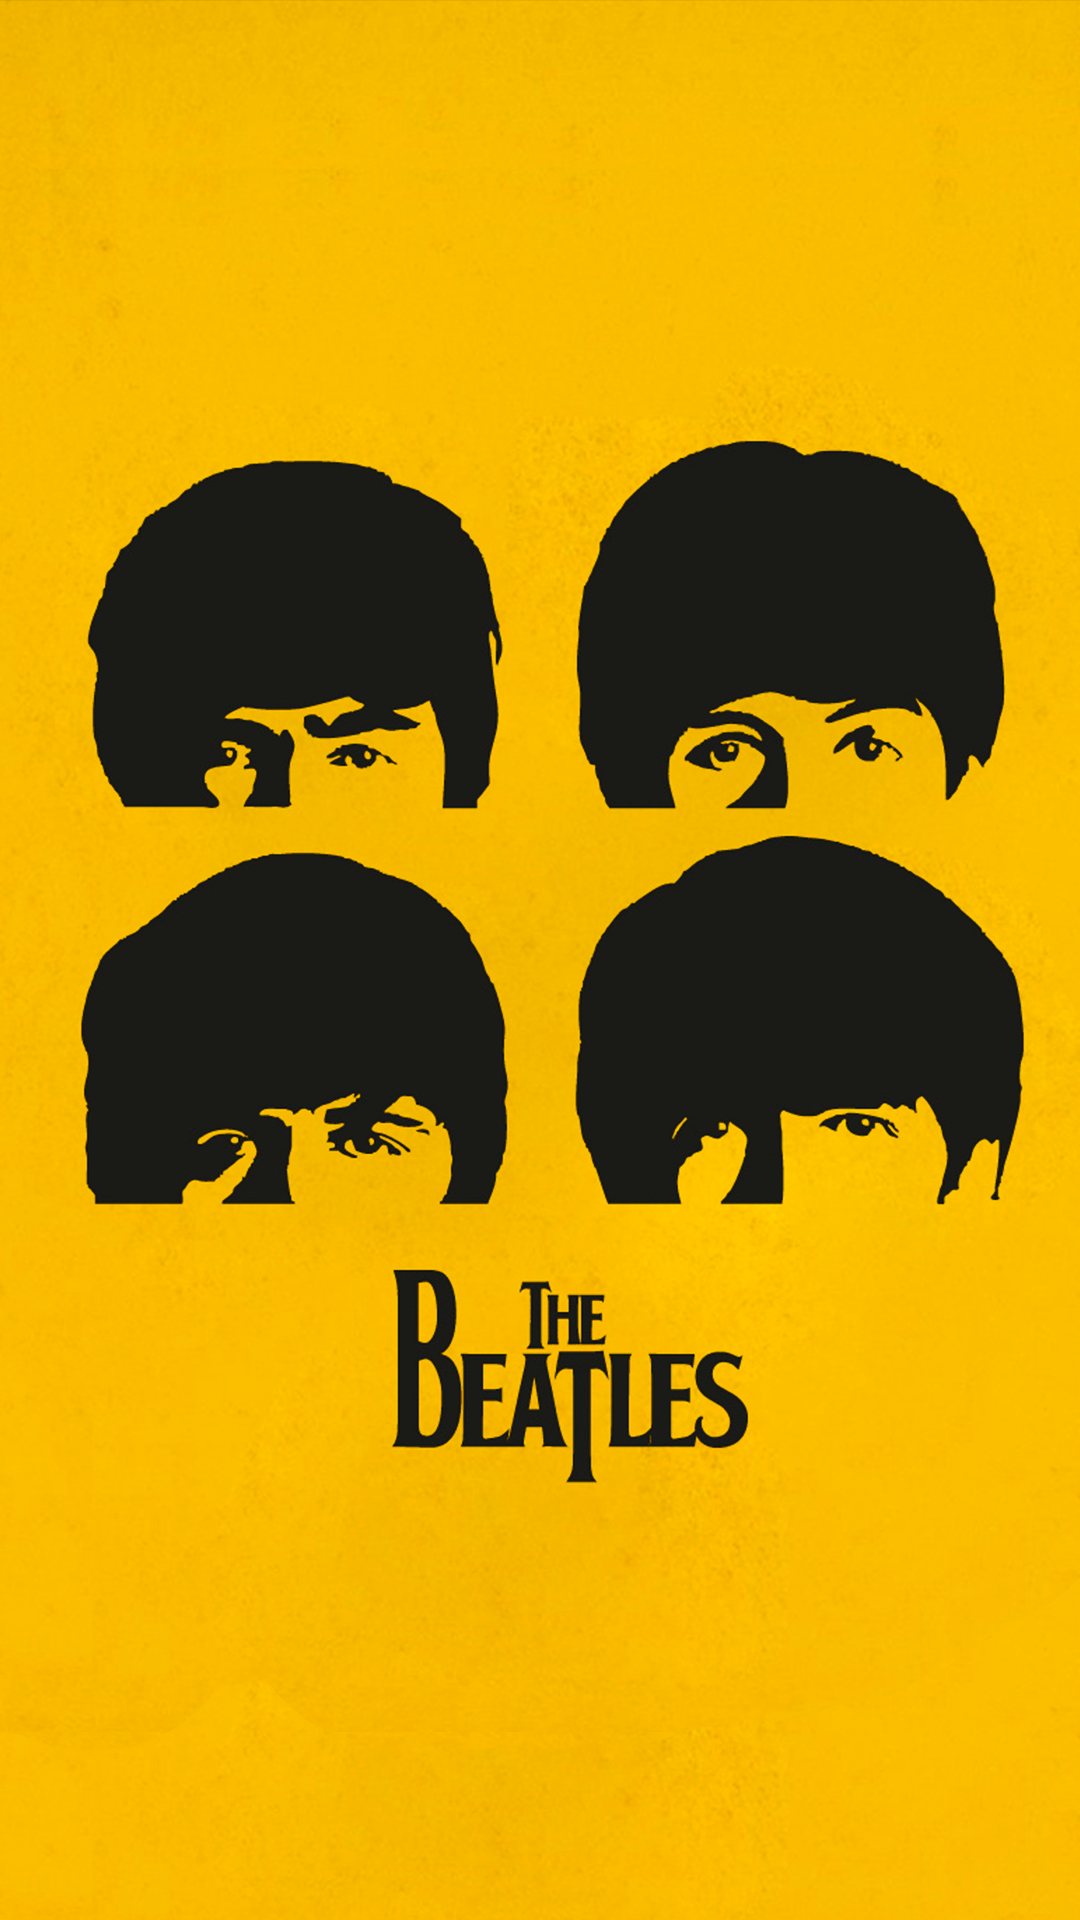 The Beatles 1080 X 1920 FHD Wallpaper